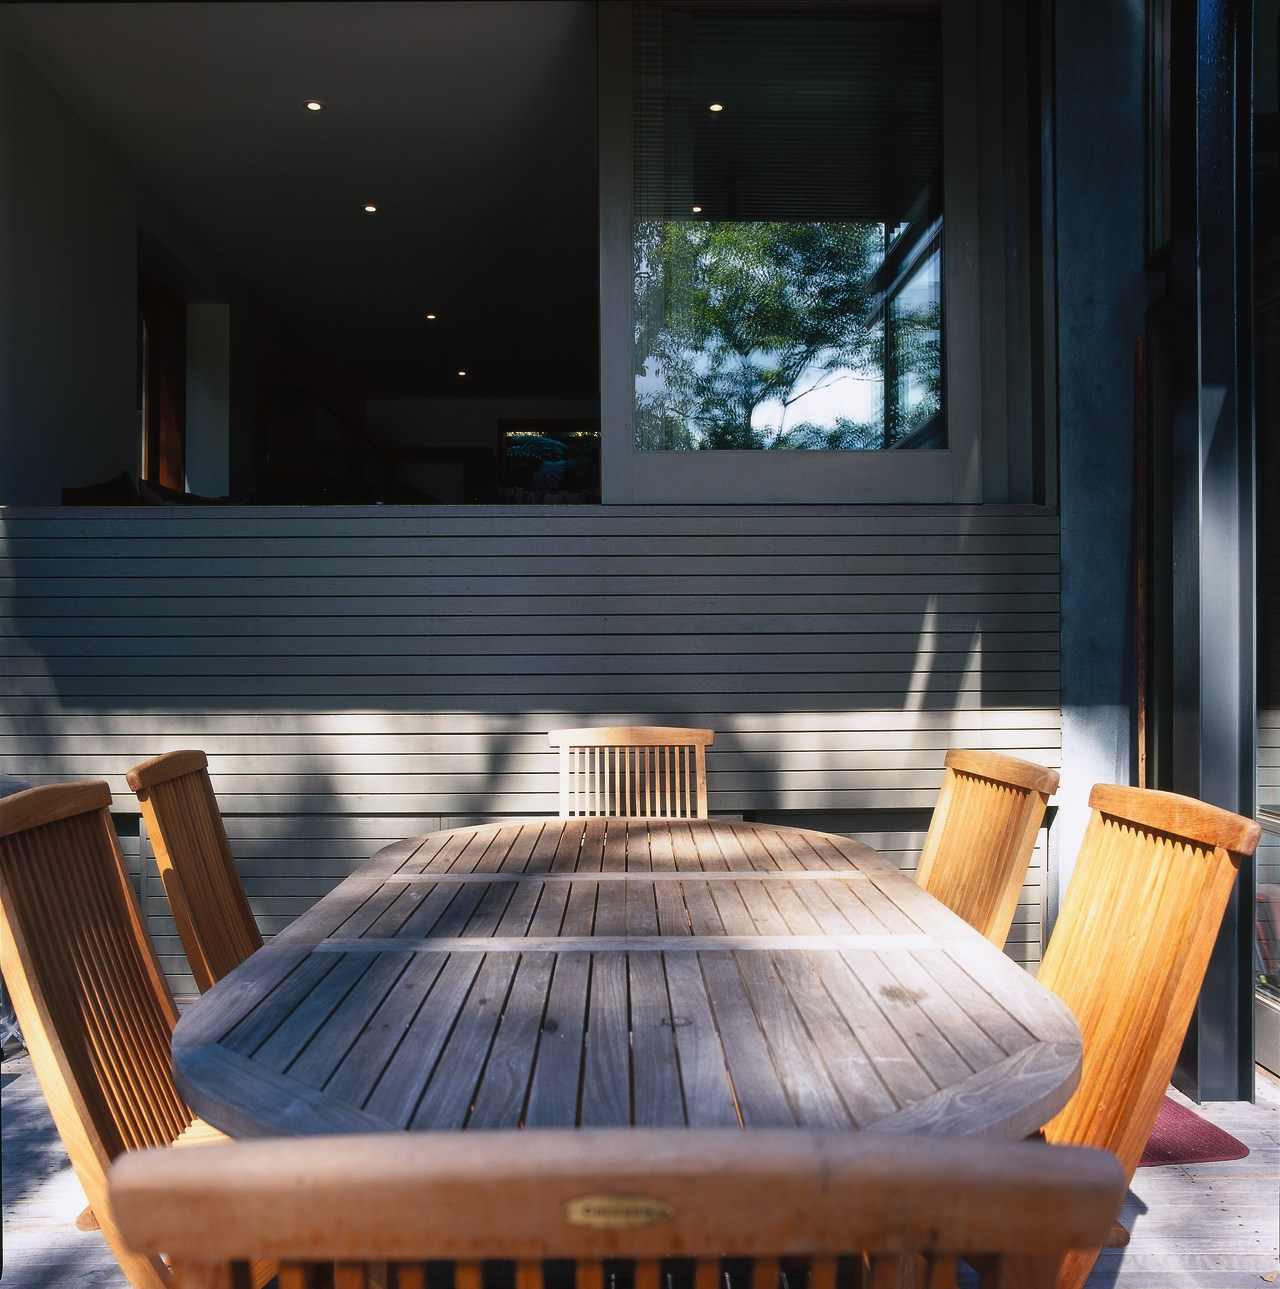 Wooden outdoor dining table and chairs on patio, architecture, chair, daylighting, floor, furniture, hardwood, interior design, lighting, outdoor furniture, table, wood, black